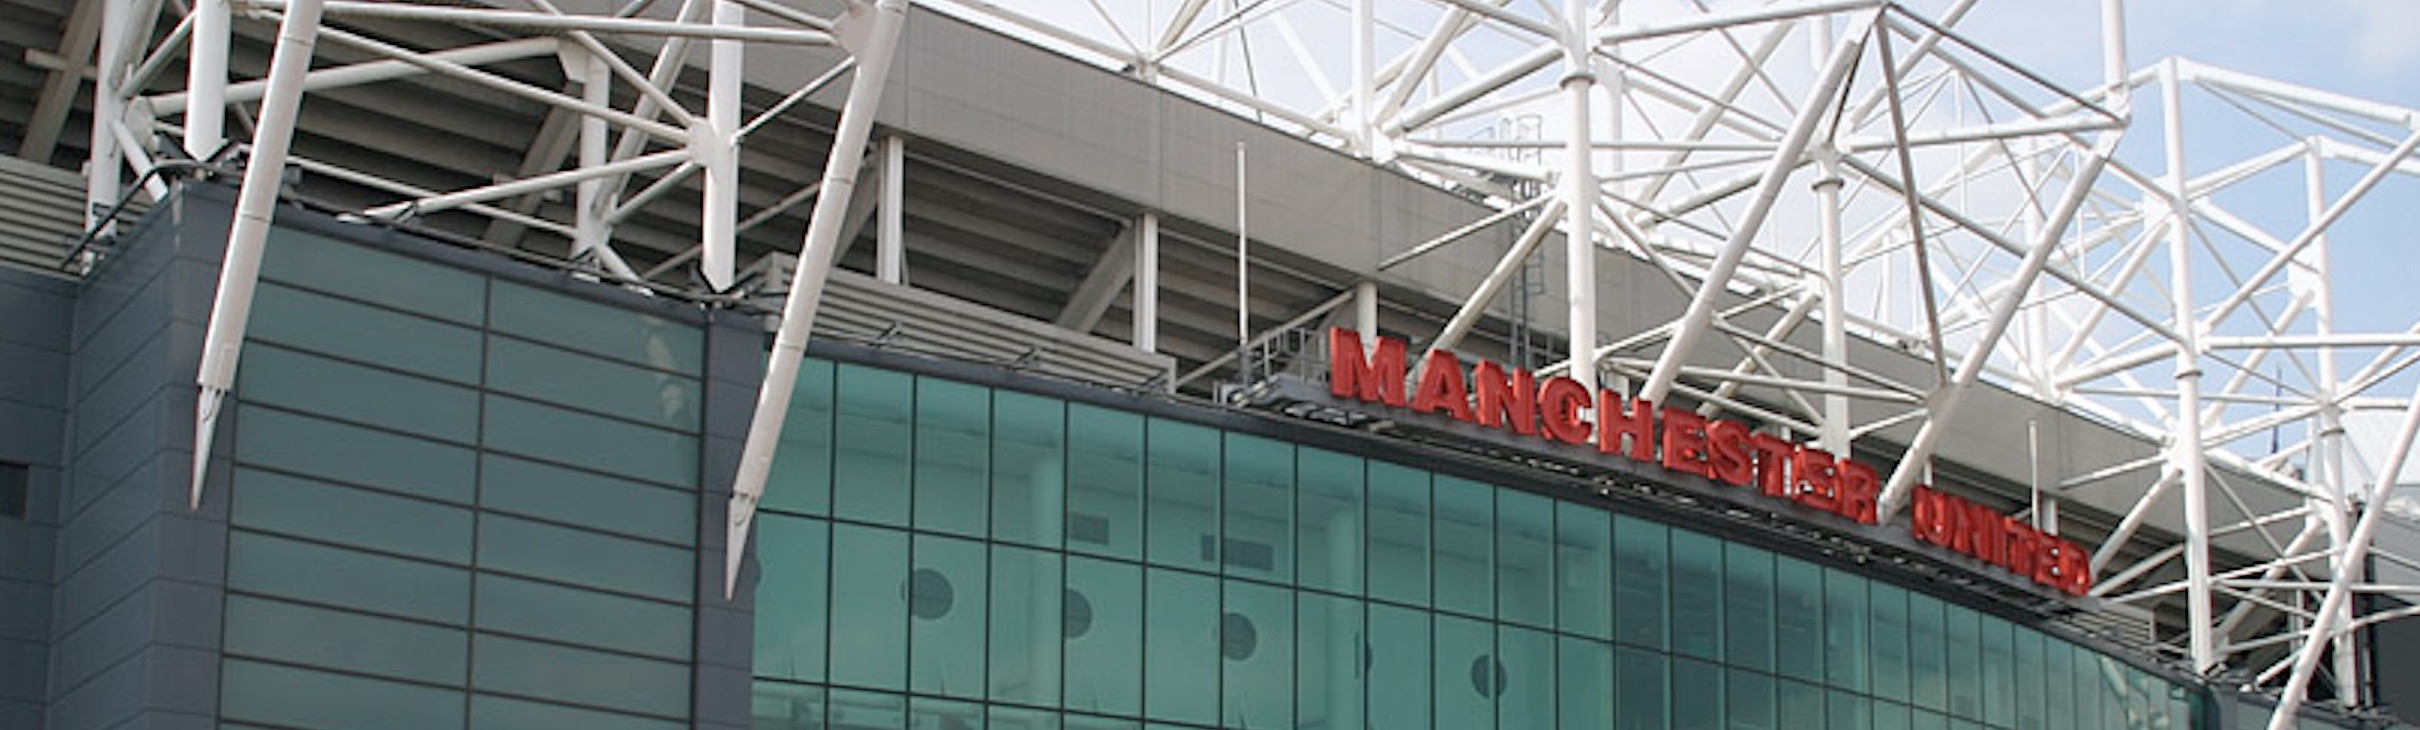 Man United V Watford - Coach/Ferry & Hotel